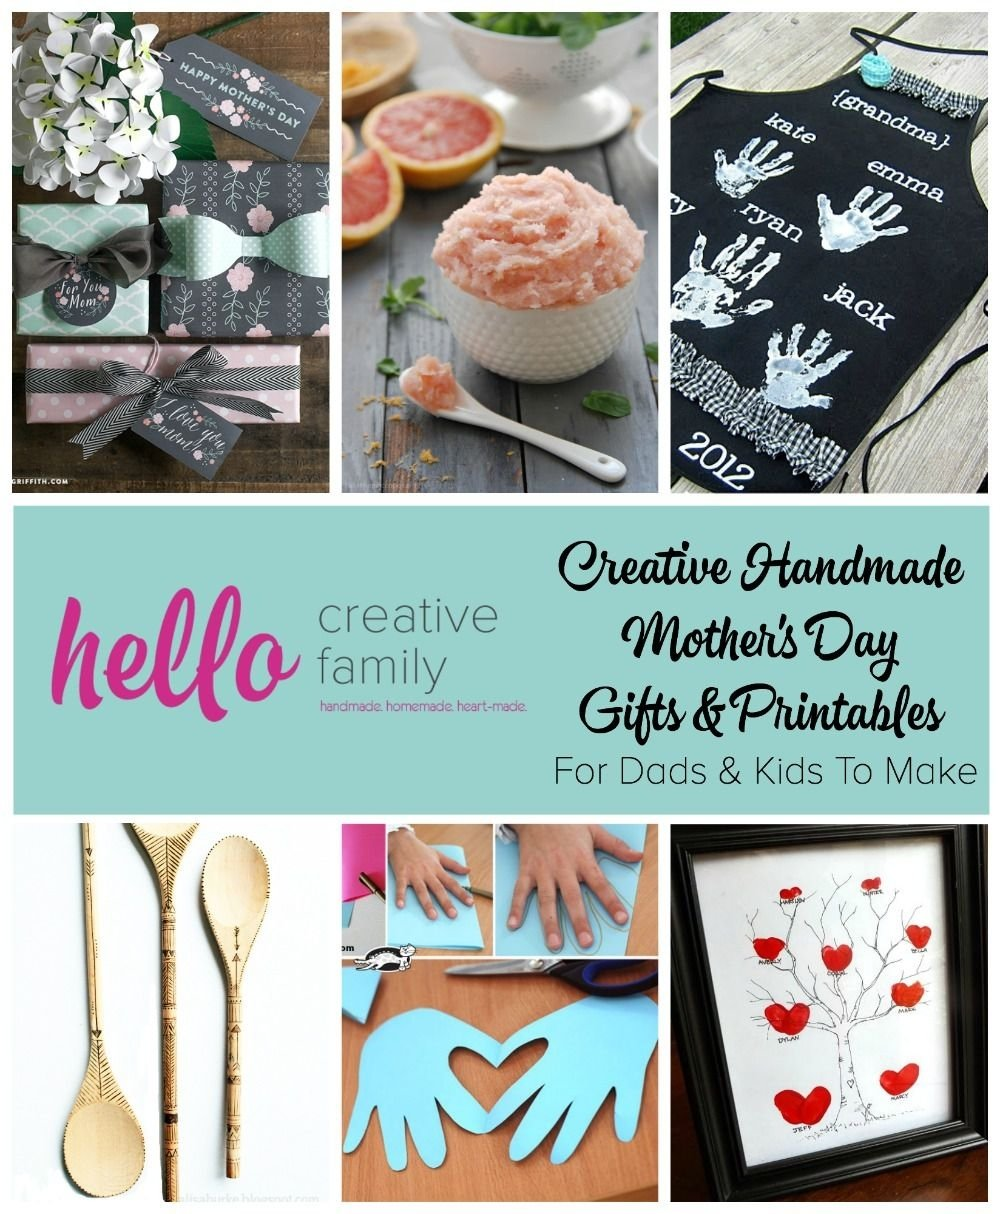 10 Fabulous Creative Homemade Mothers Day Gift Ideas stunning creative handmade day gifts and printables for dads picture 2020